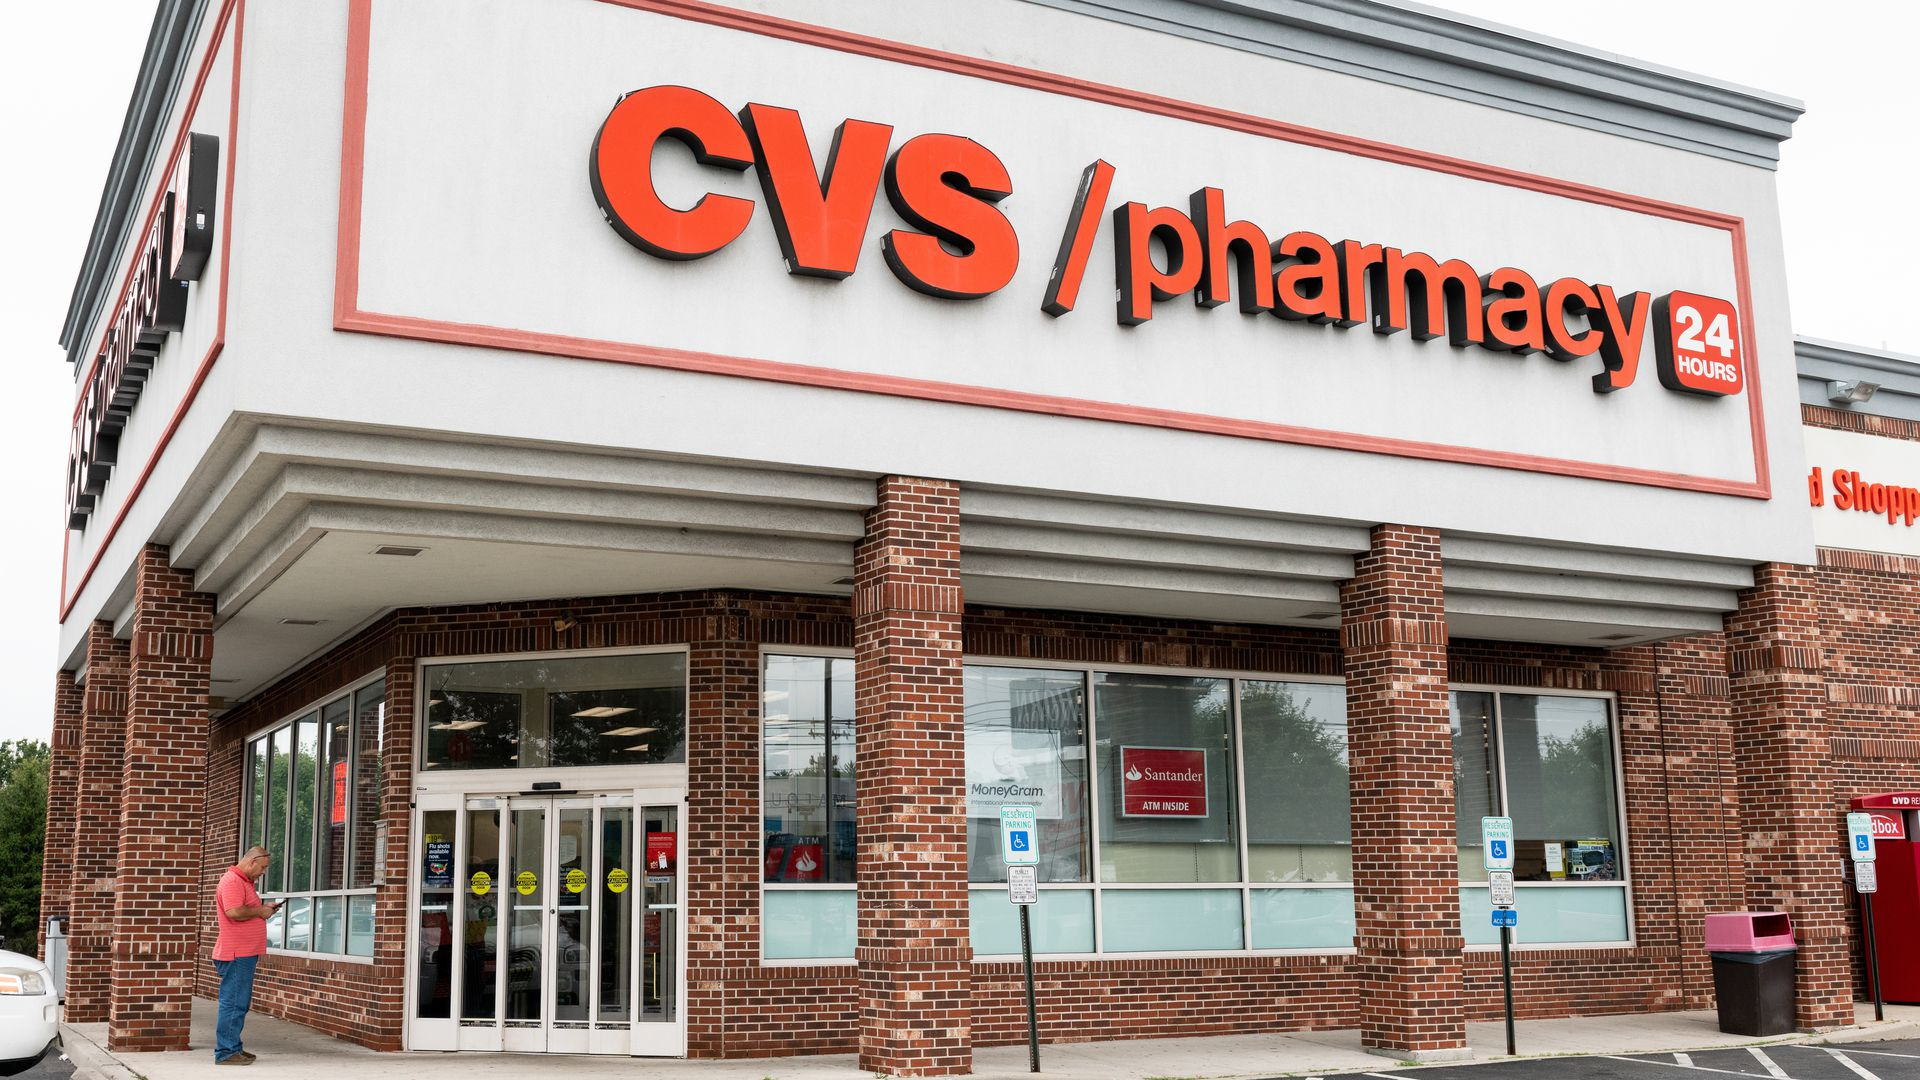 A CVS pharmacy store.